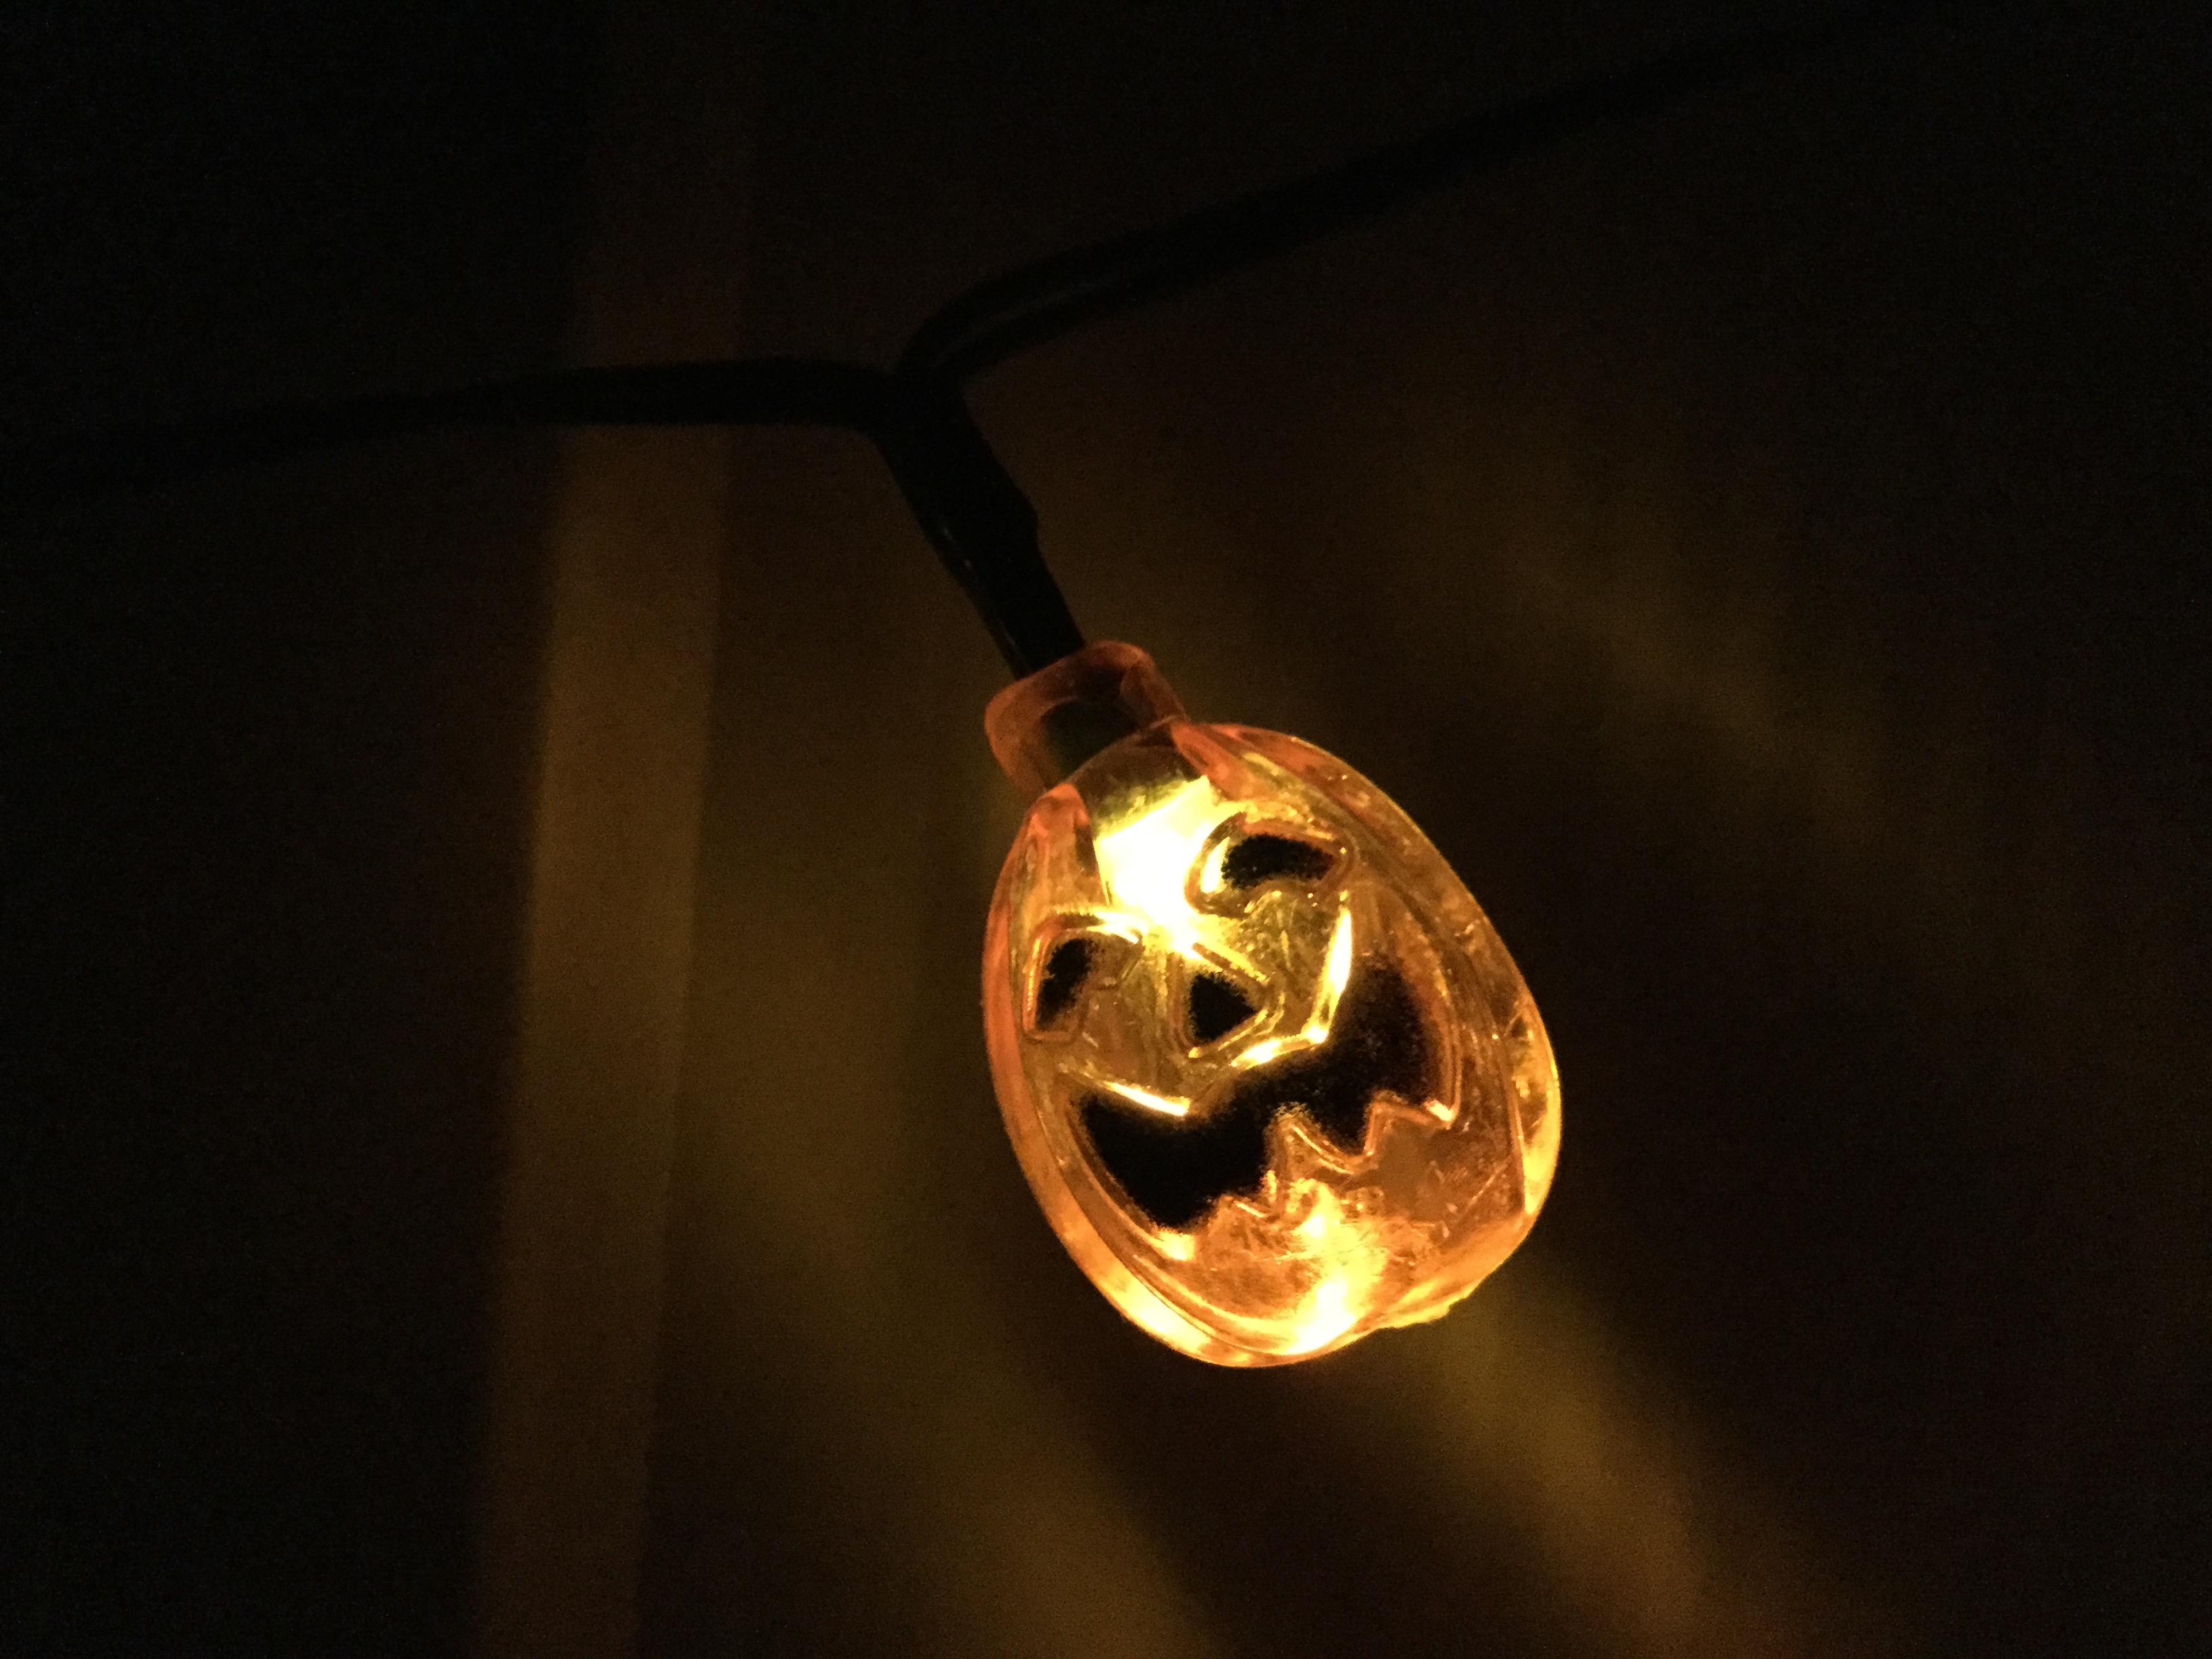 great for decorating anywhere without electricity